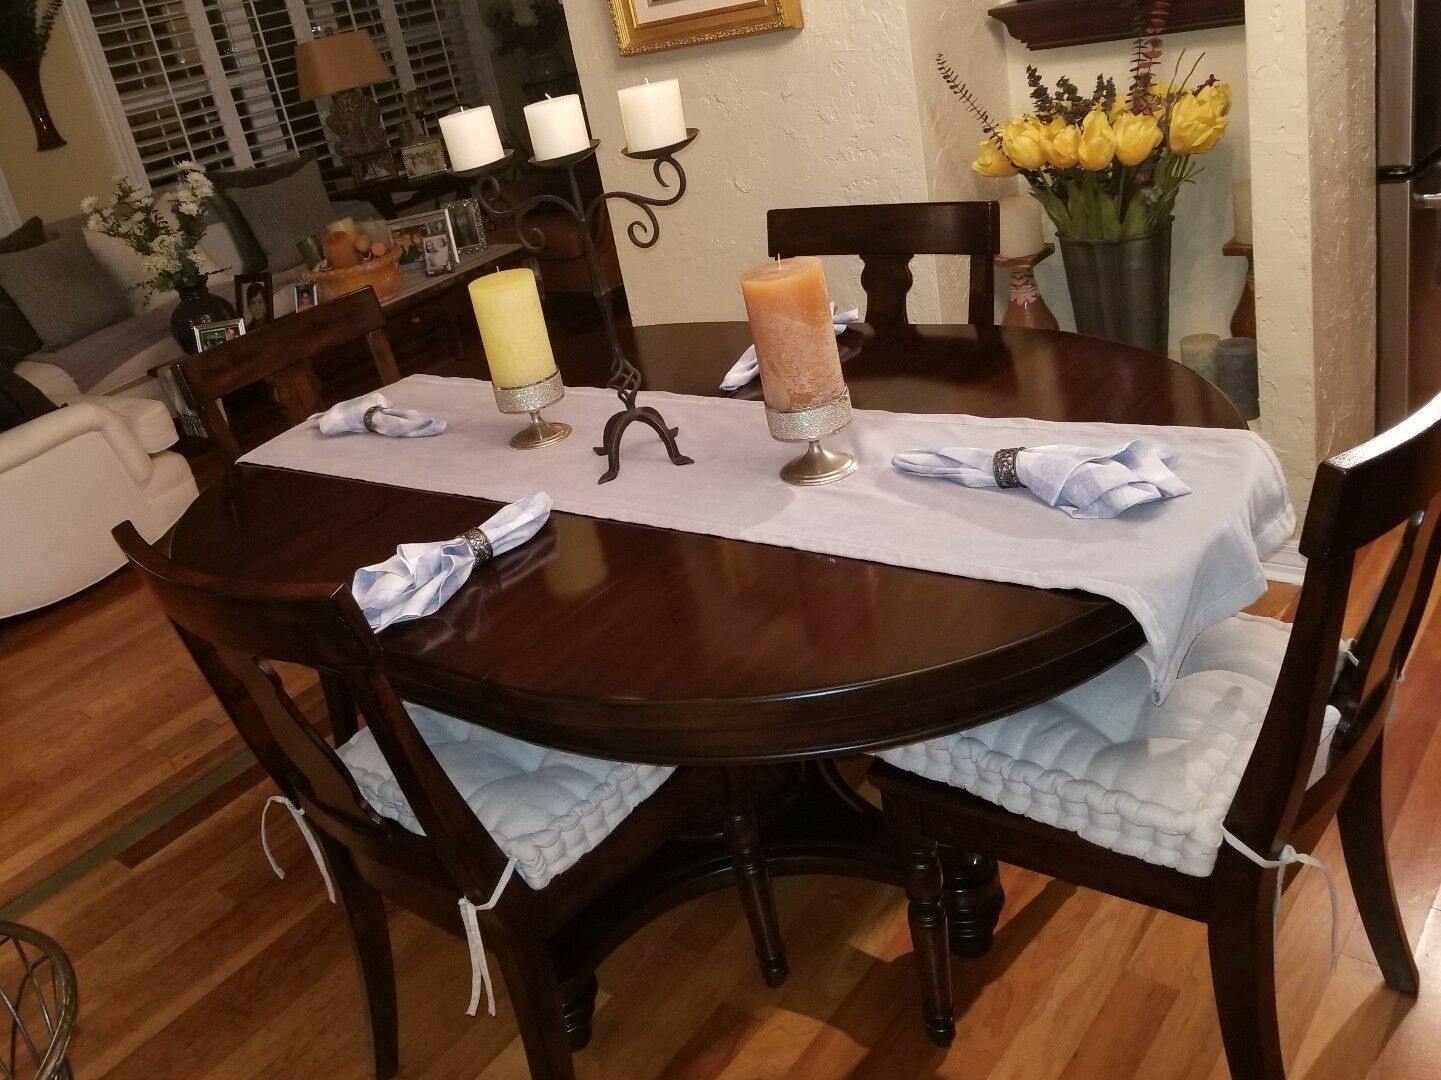 Pottery Barn Dining Room Table For Sale Online Ebay